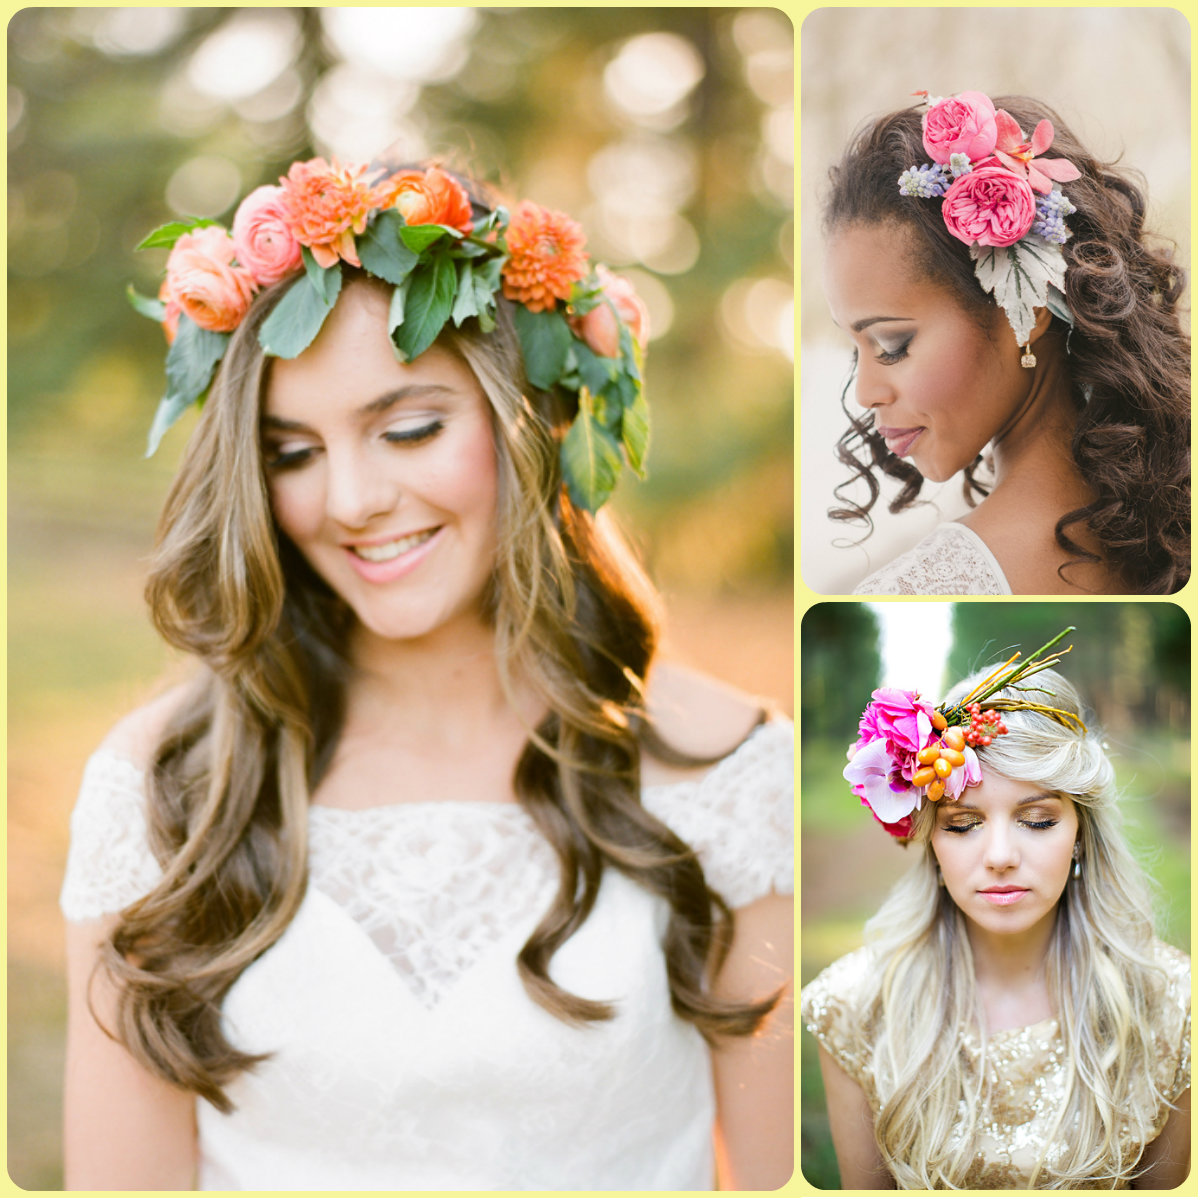 Summer Wedding Hairstyles For Medium Hair : Summer bridal hairstyles with flowers